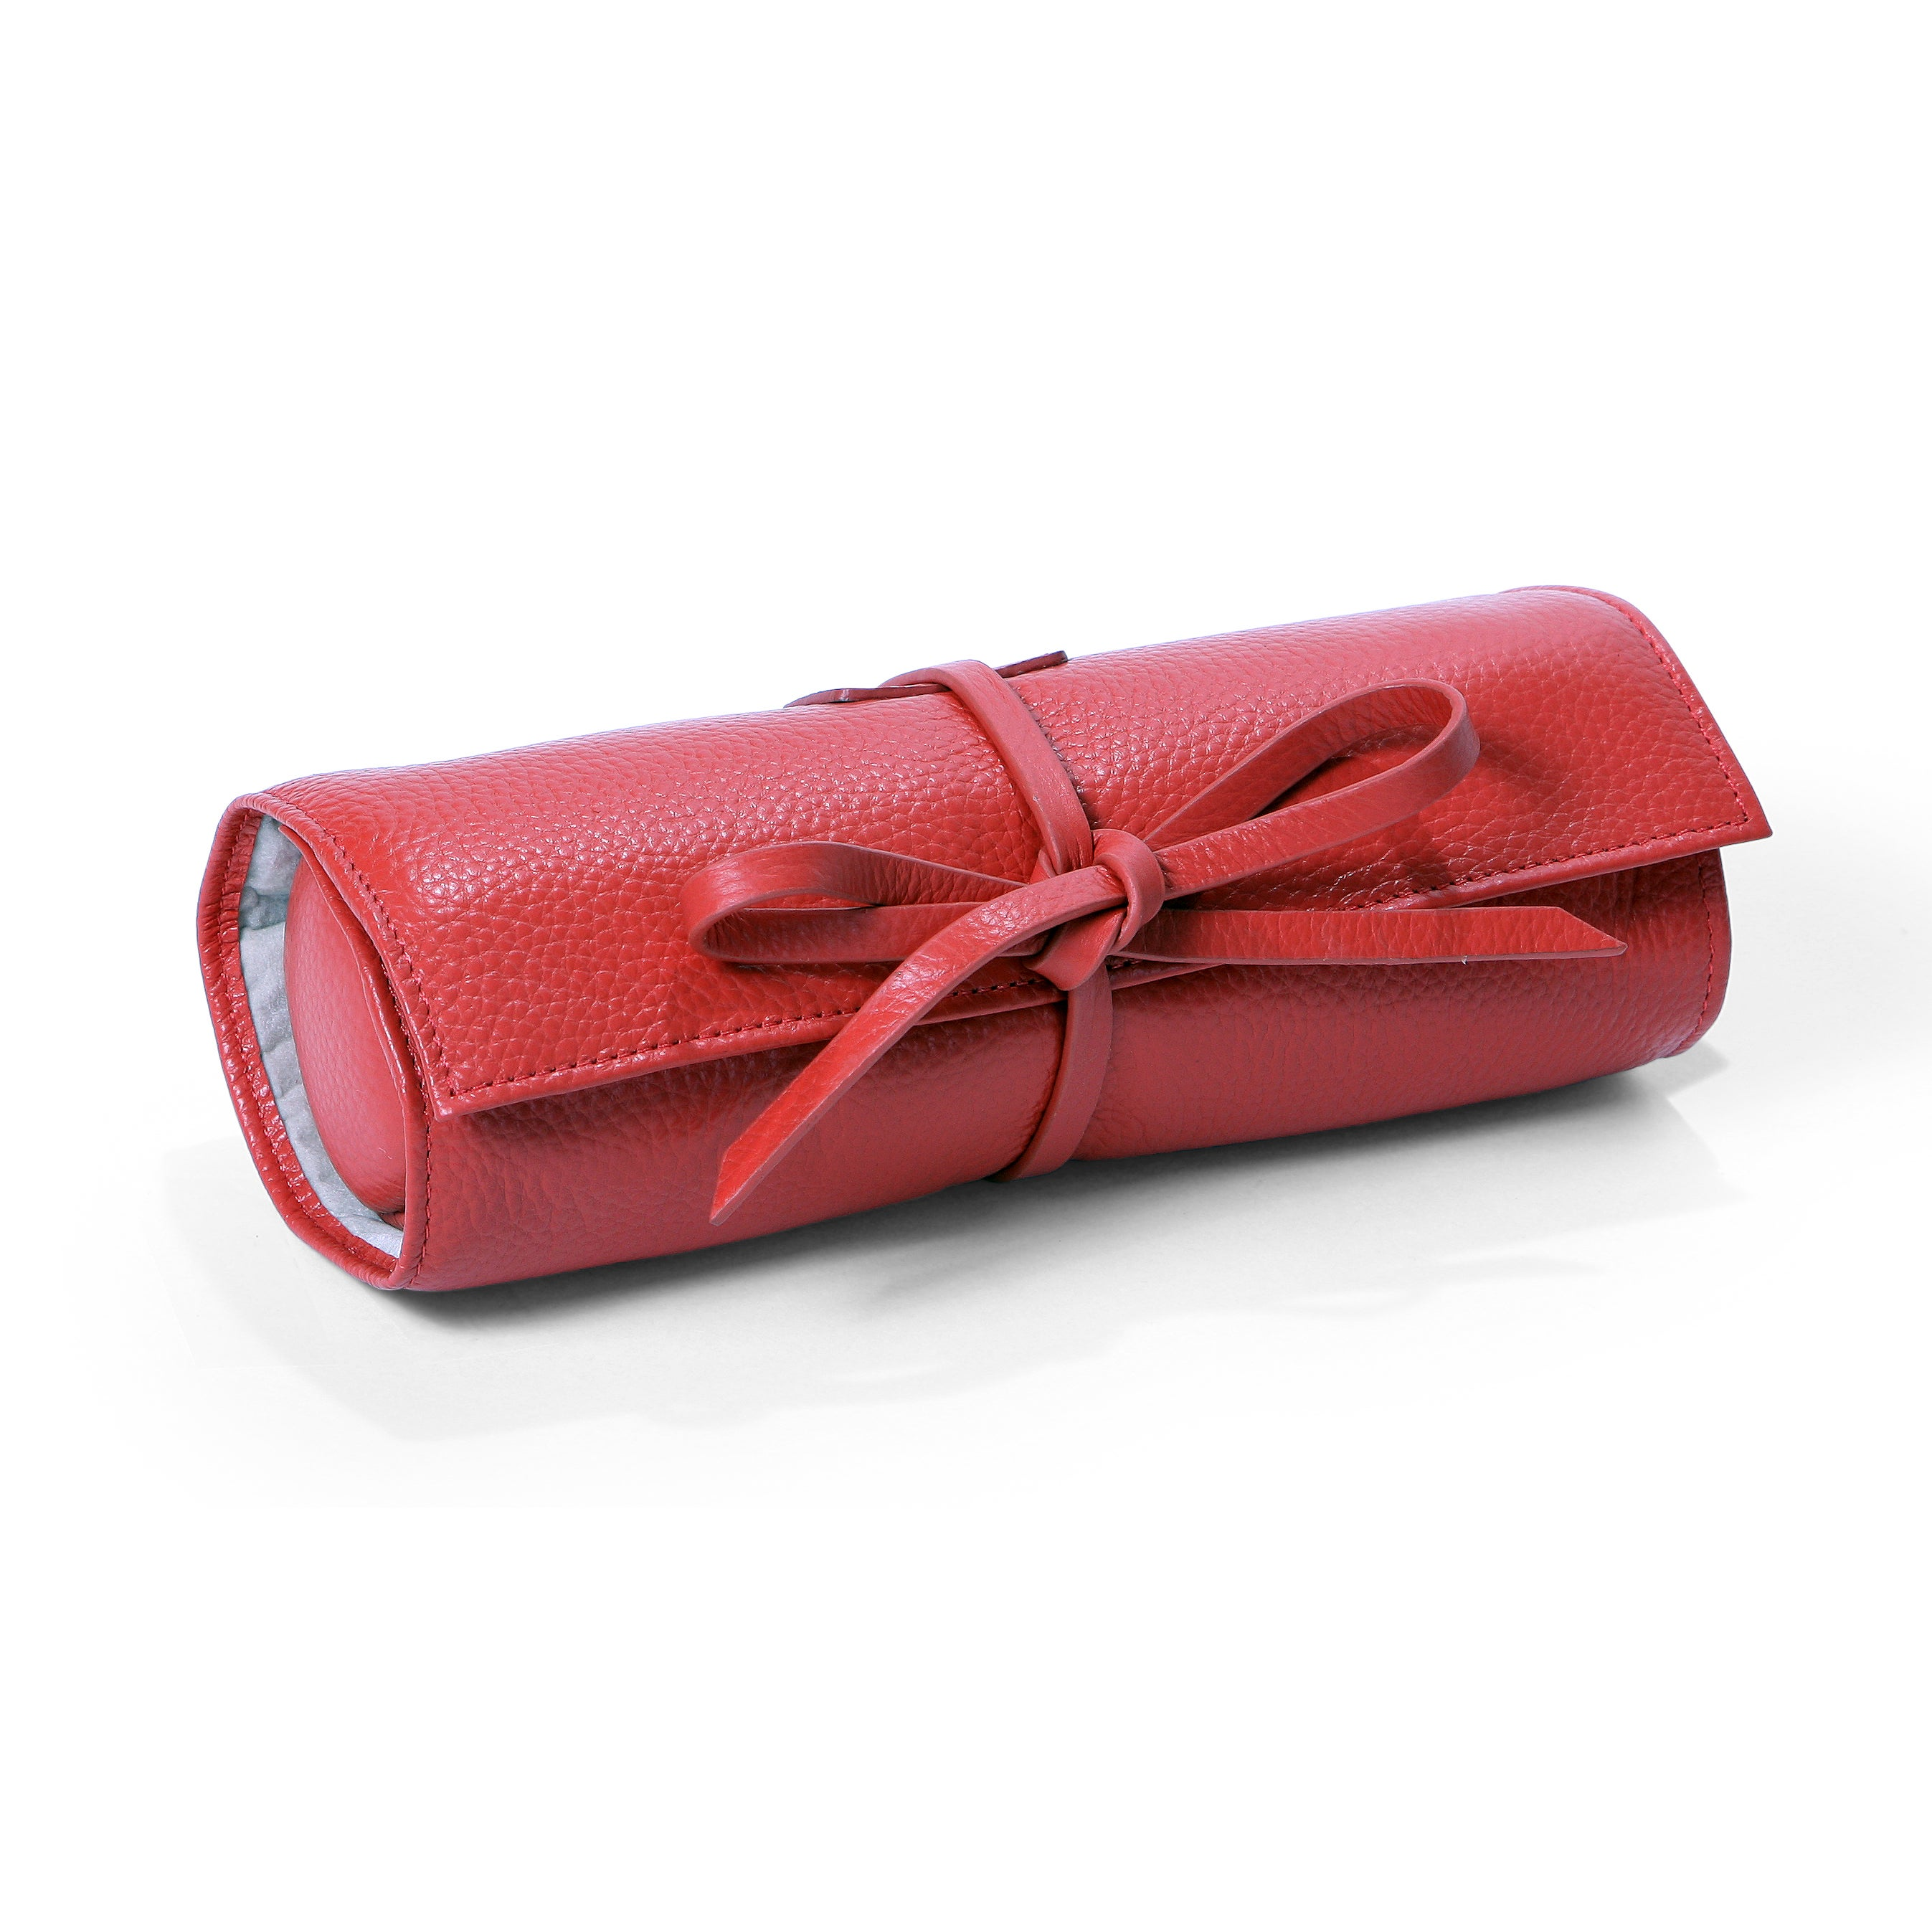 Https Food Gifts Dendrobium Orchids 12 Stems Expedition E6681 Rose Gold Black Morelle Carrie Coral Genuine Top Grain Leather Jewelry Roll Tie 996f82c1 930e 4d0c 9cd0 72dcd936aeb5